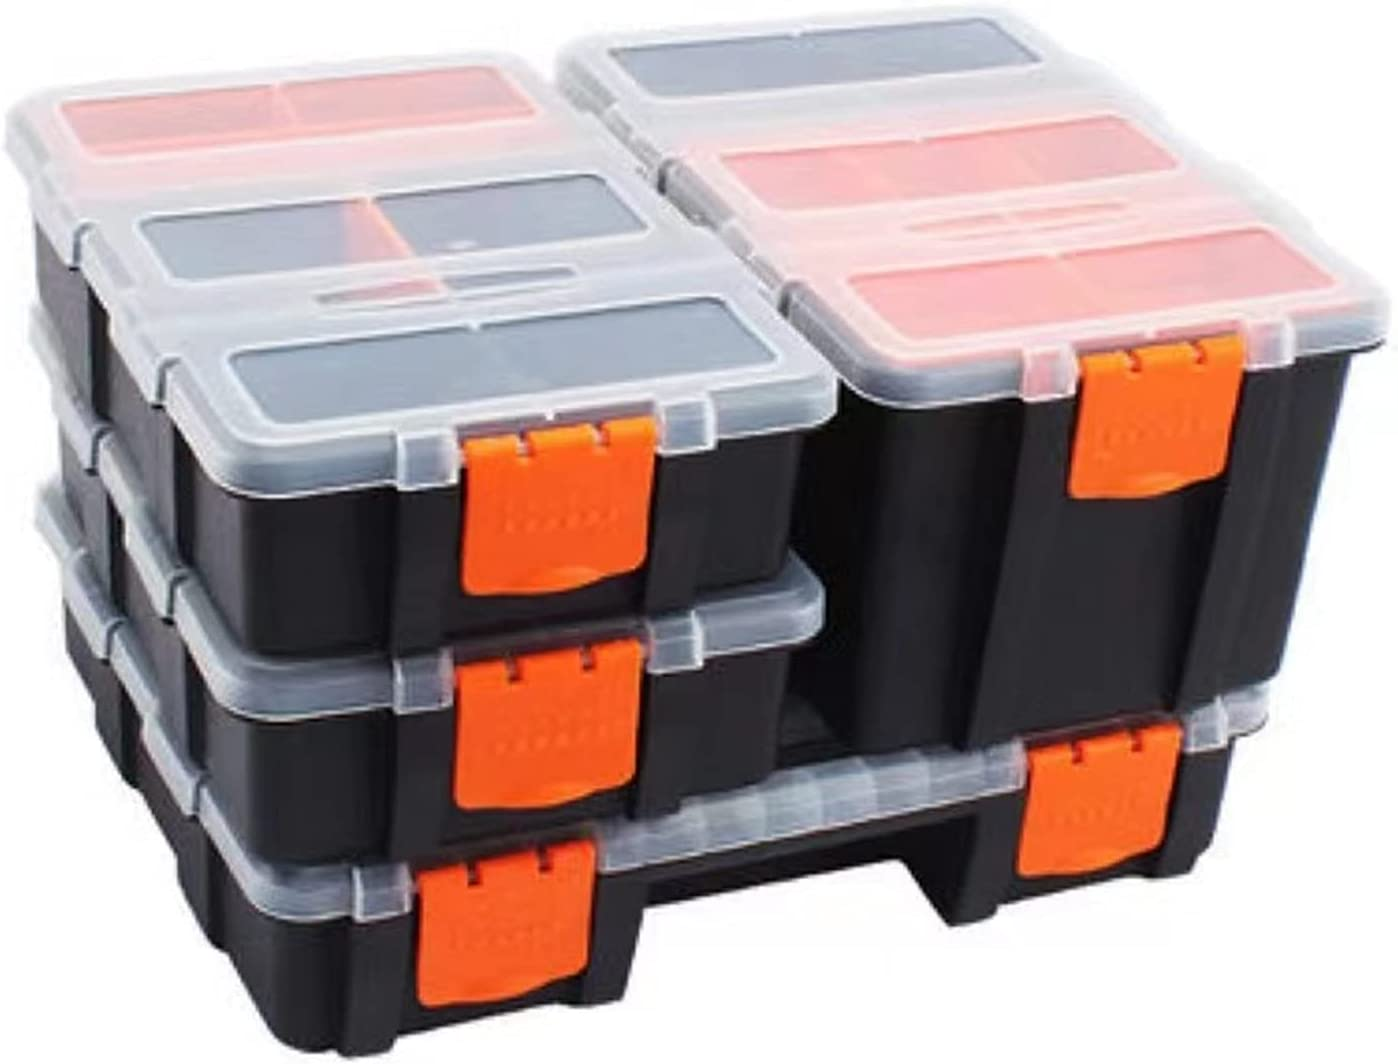 Tool Box 4 Pcs Ranking TOP12 Set Plastic T Case Combined Max 87% OFF Storage with